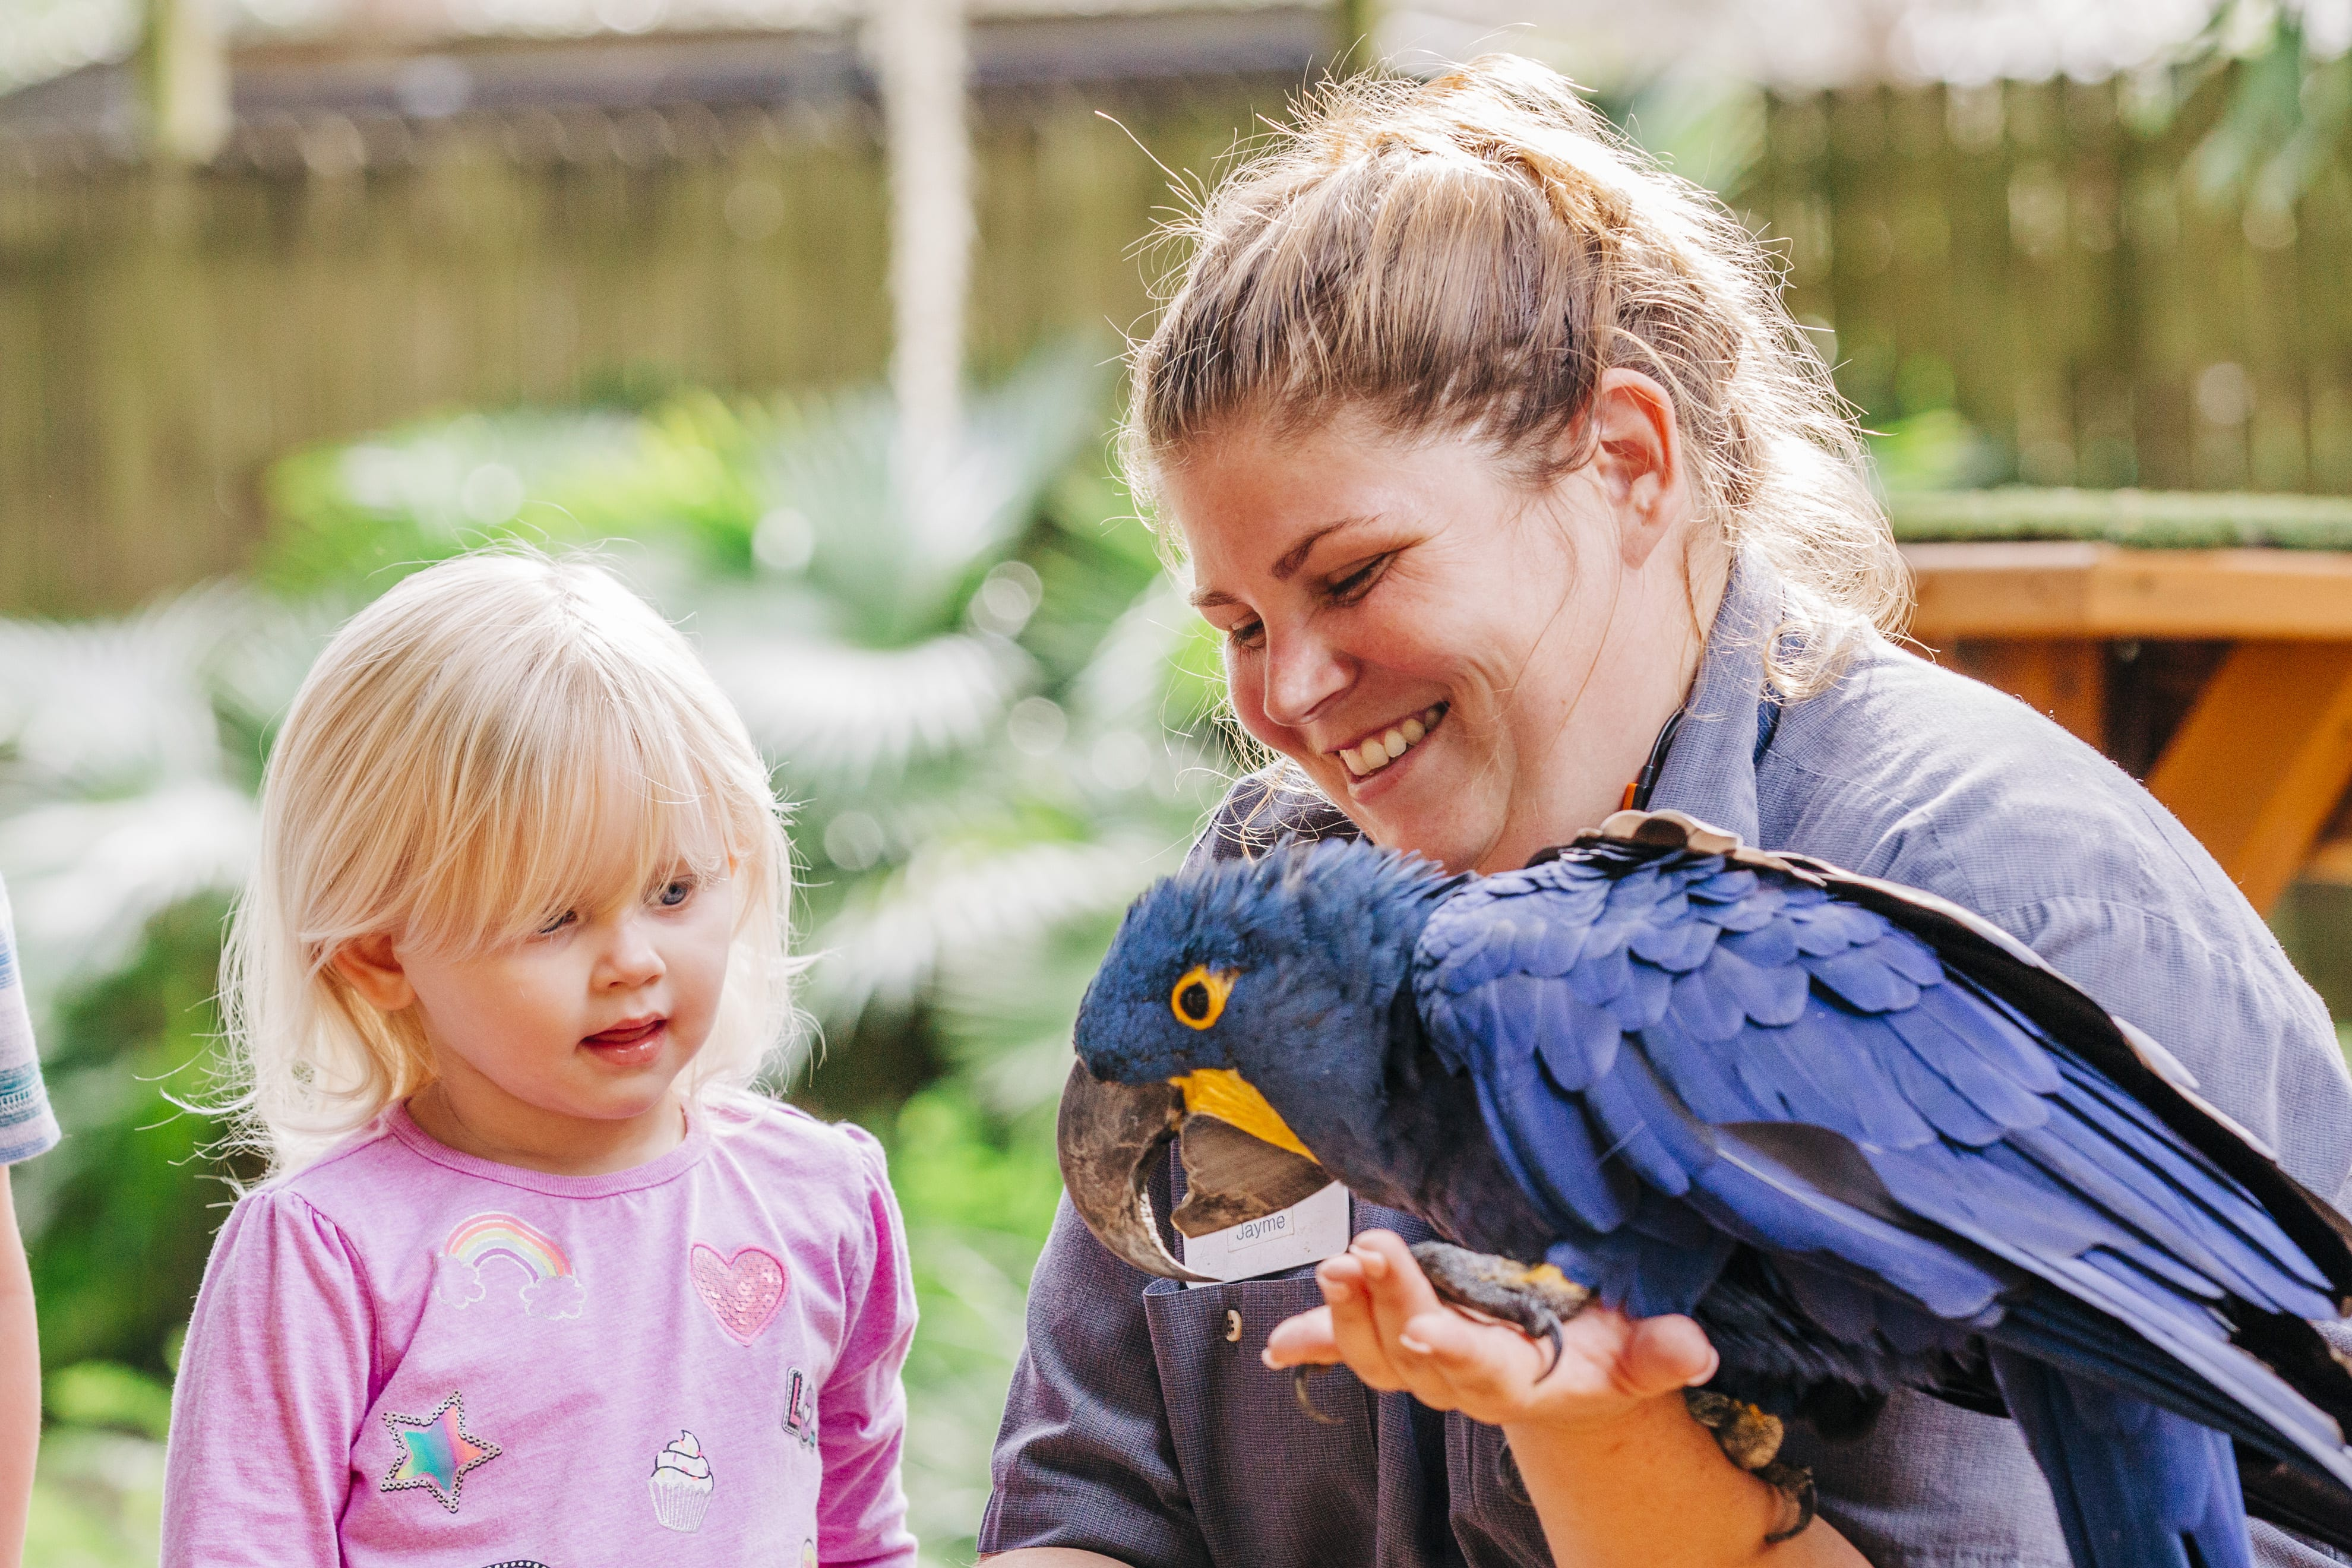 Toddler Tuesdays - ZooTampa at Lowry Park